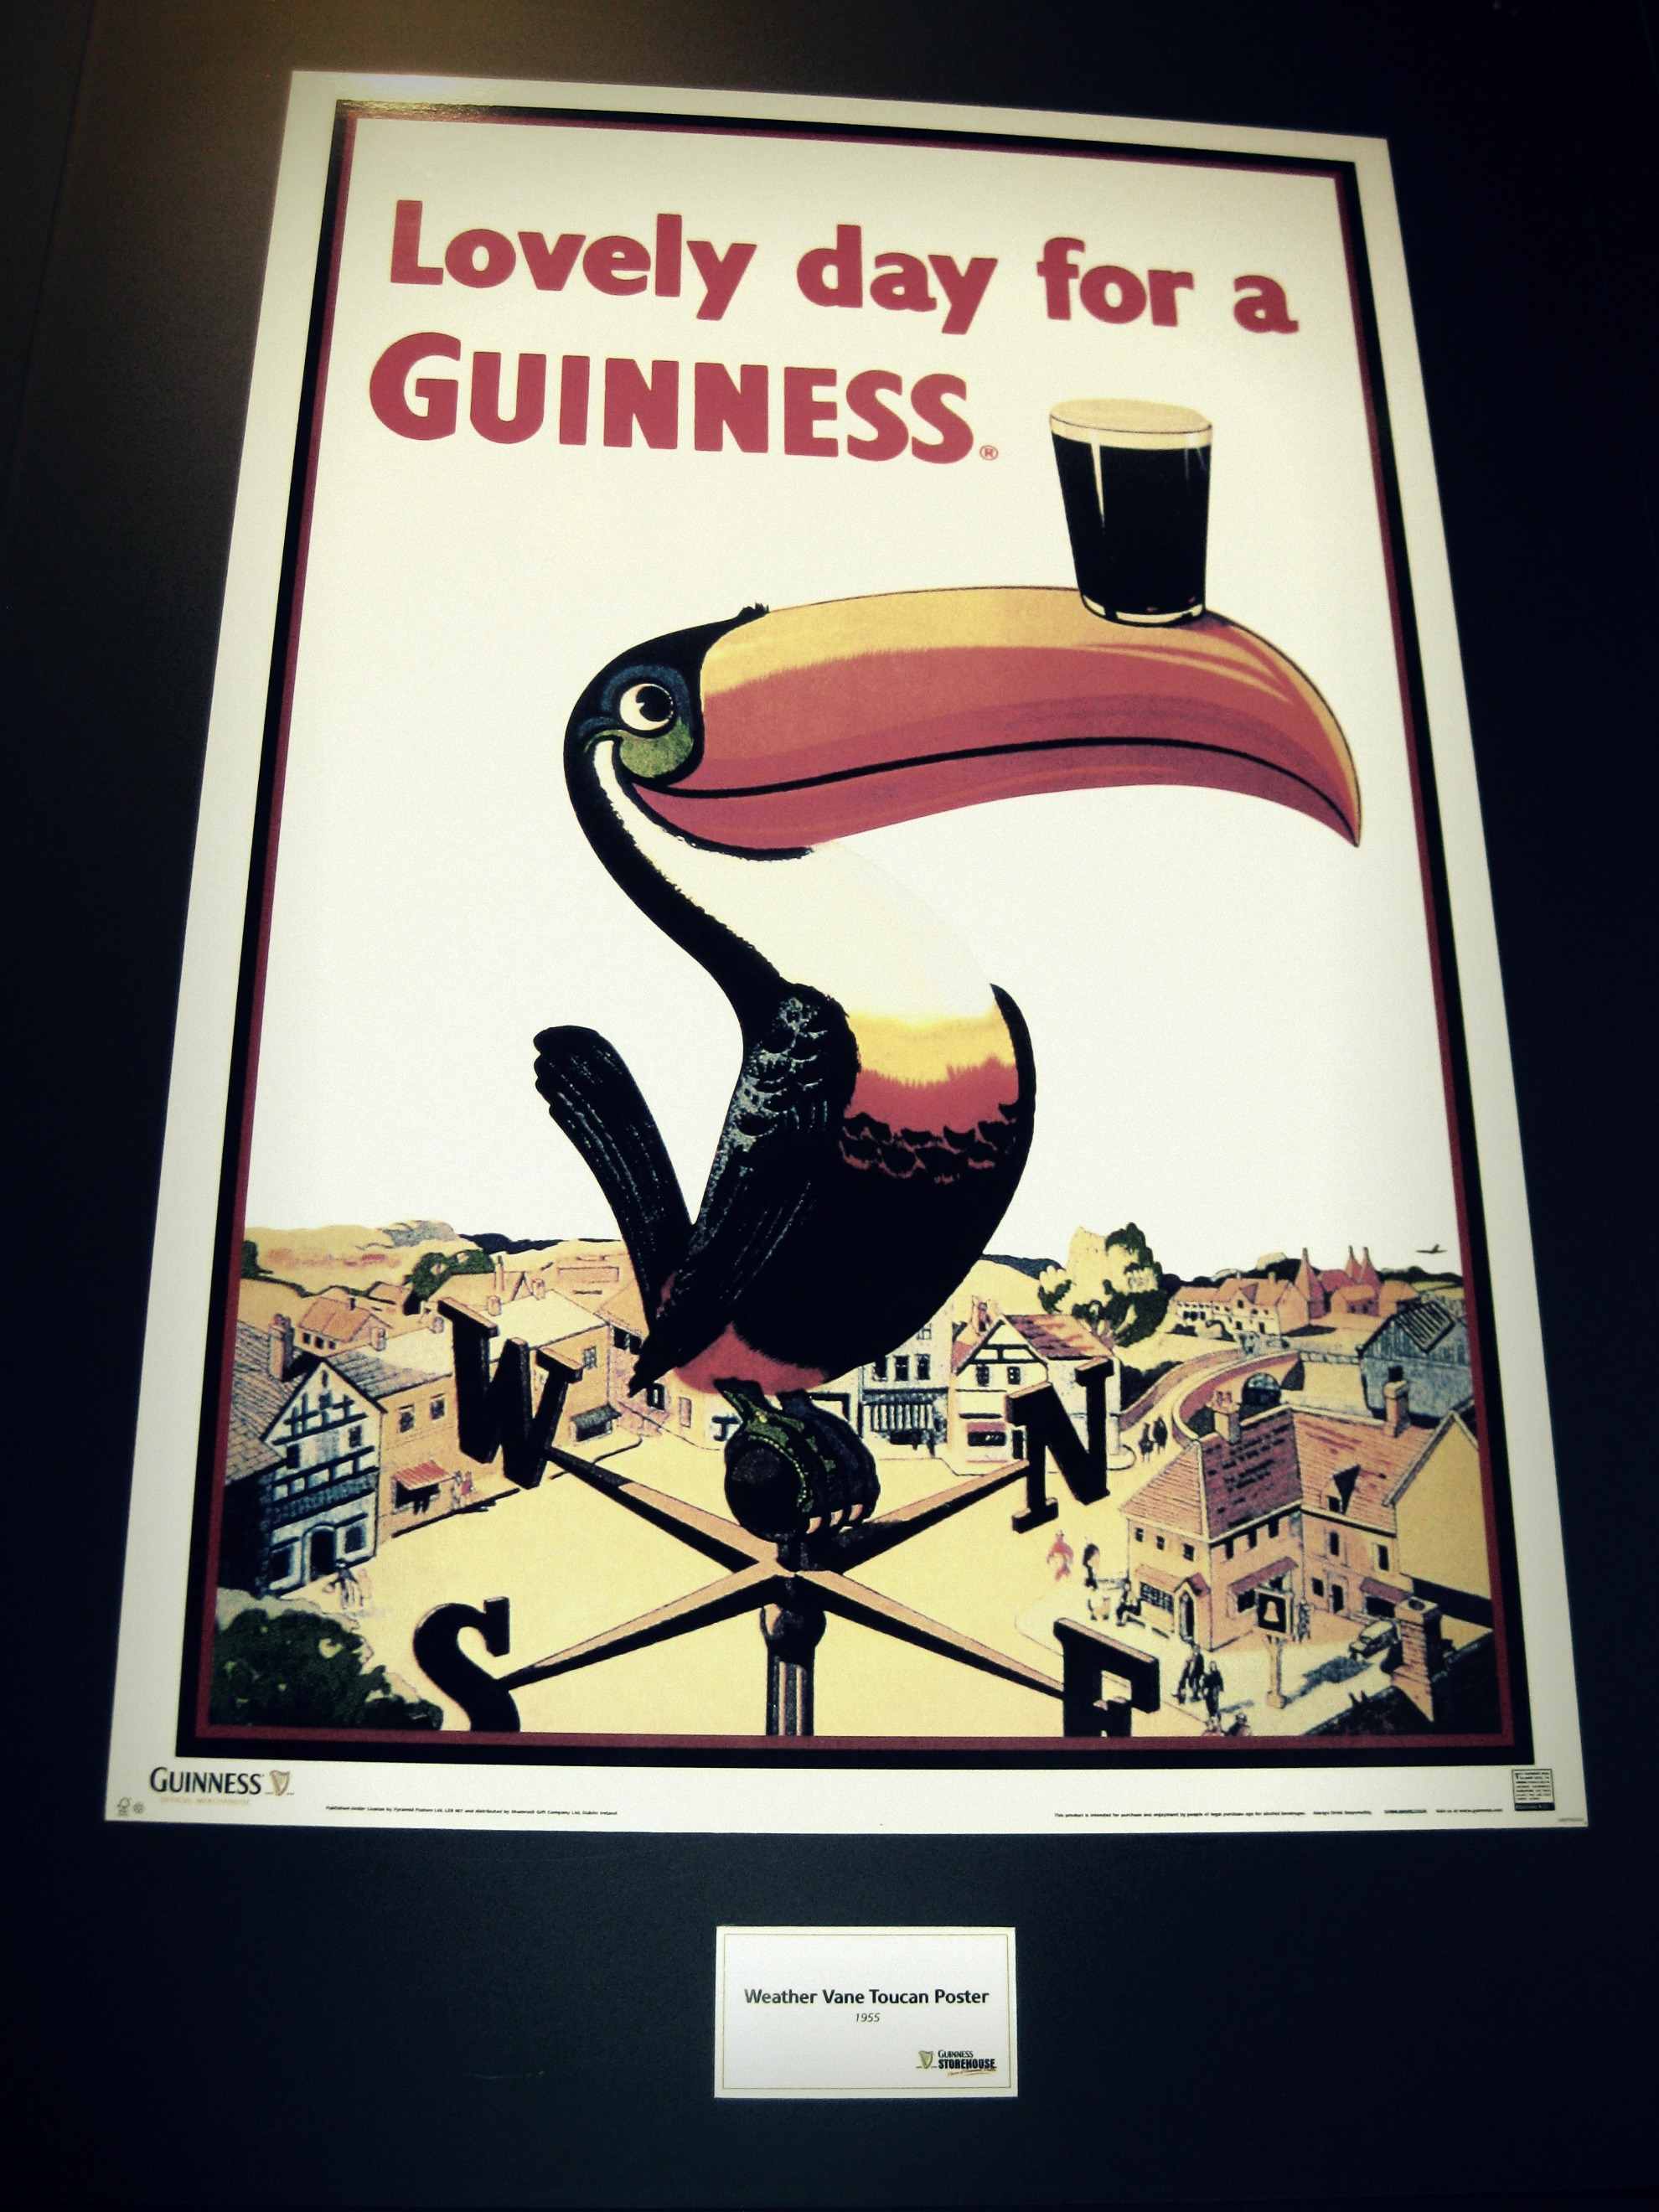 037-Lovely-day-for-a-GUINNESS